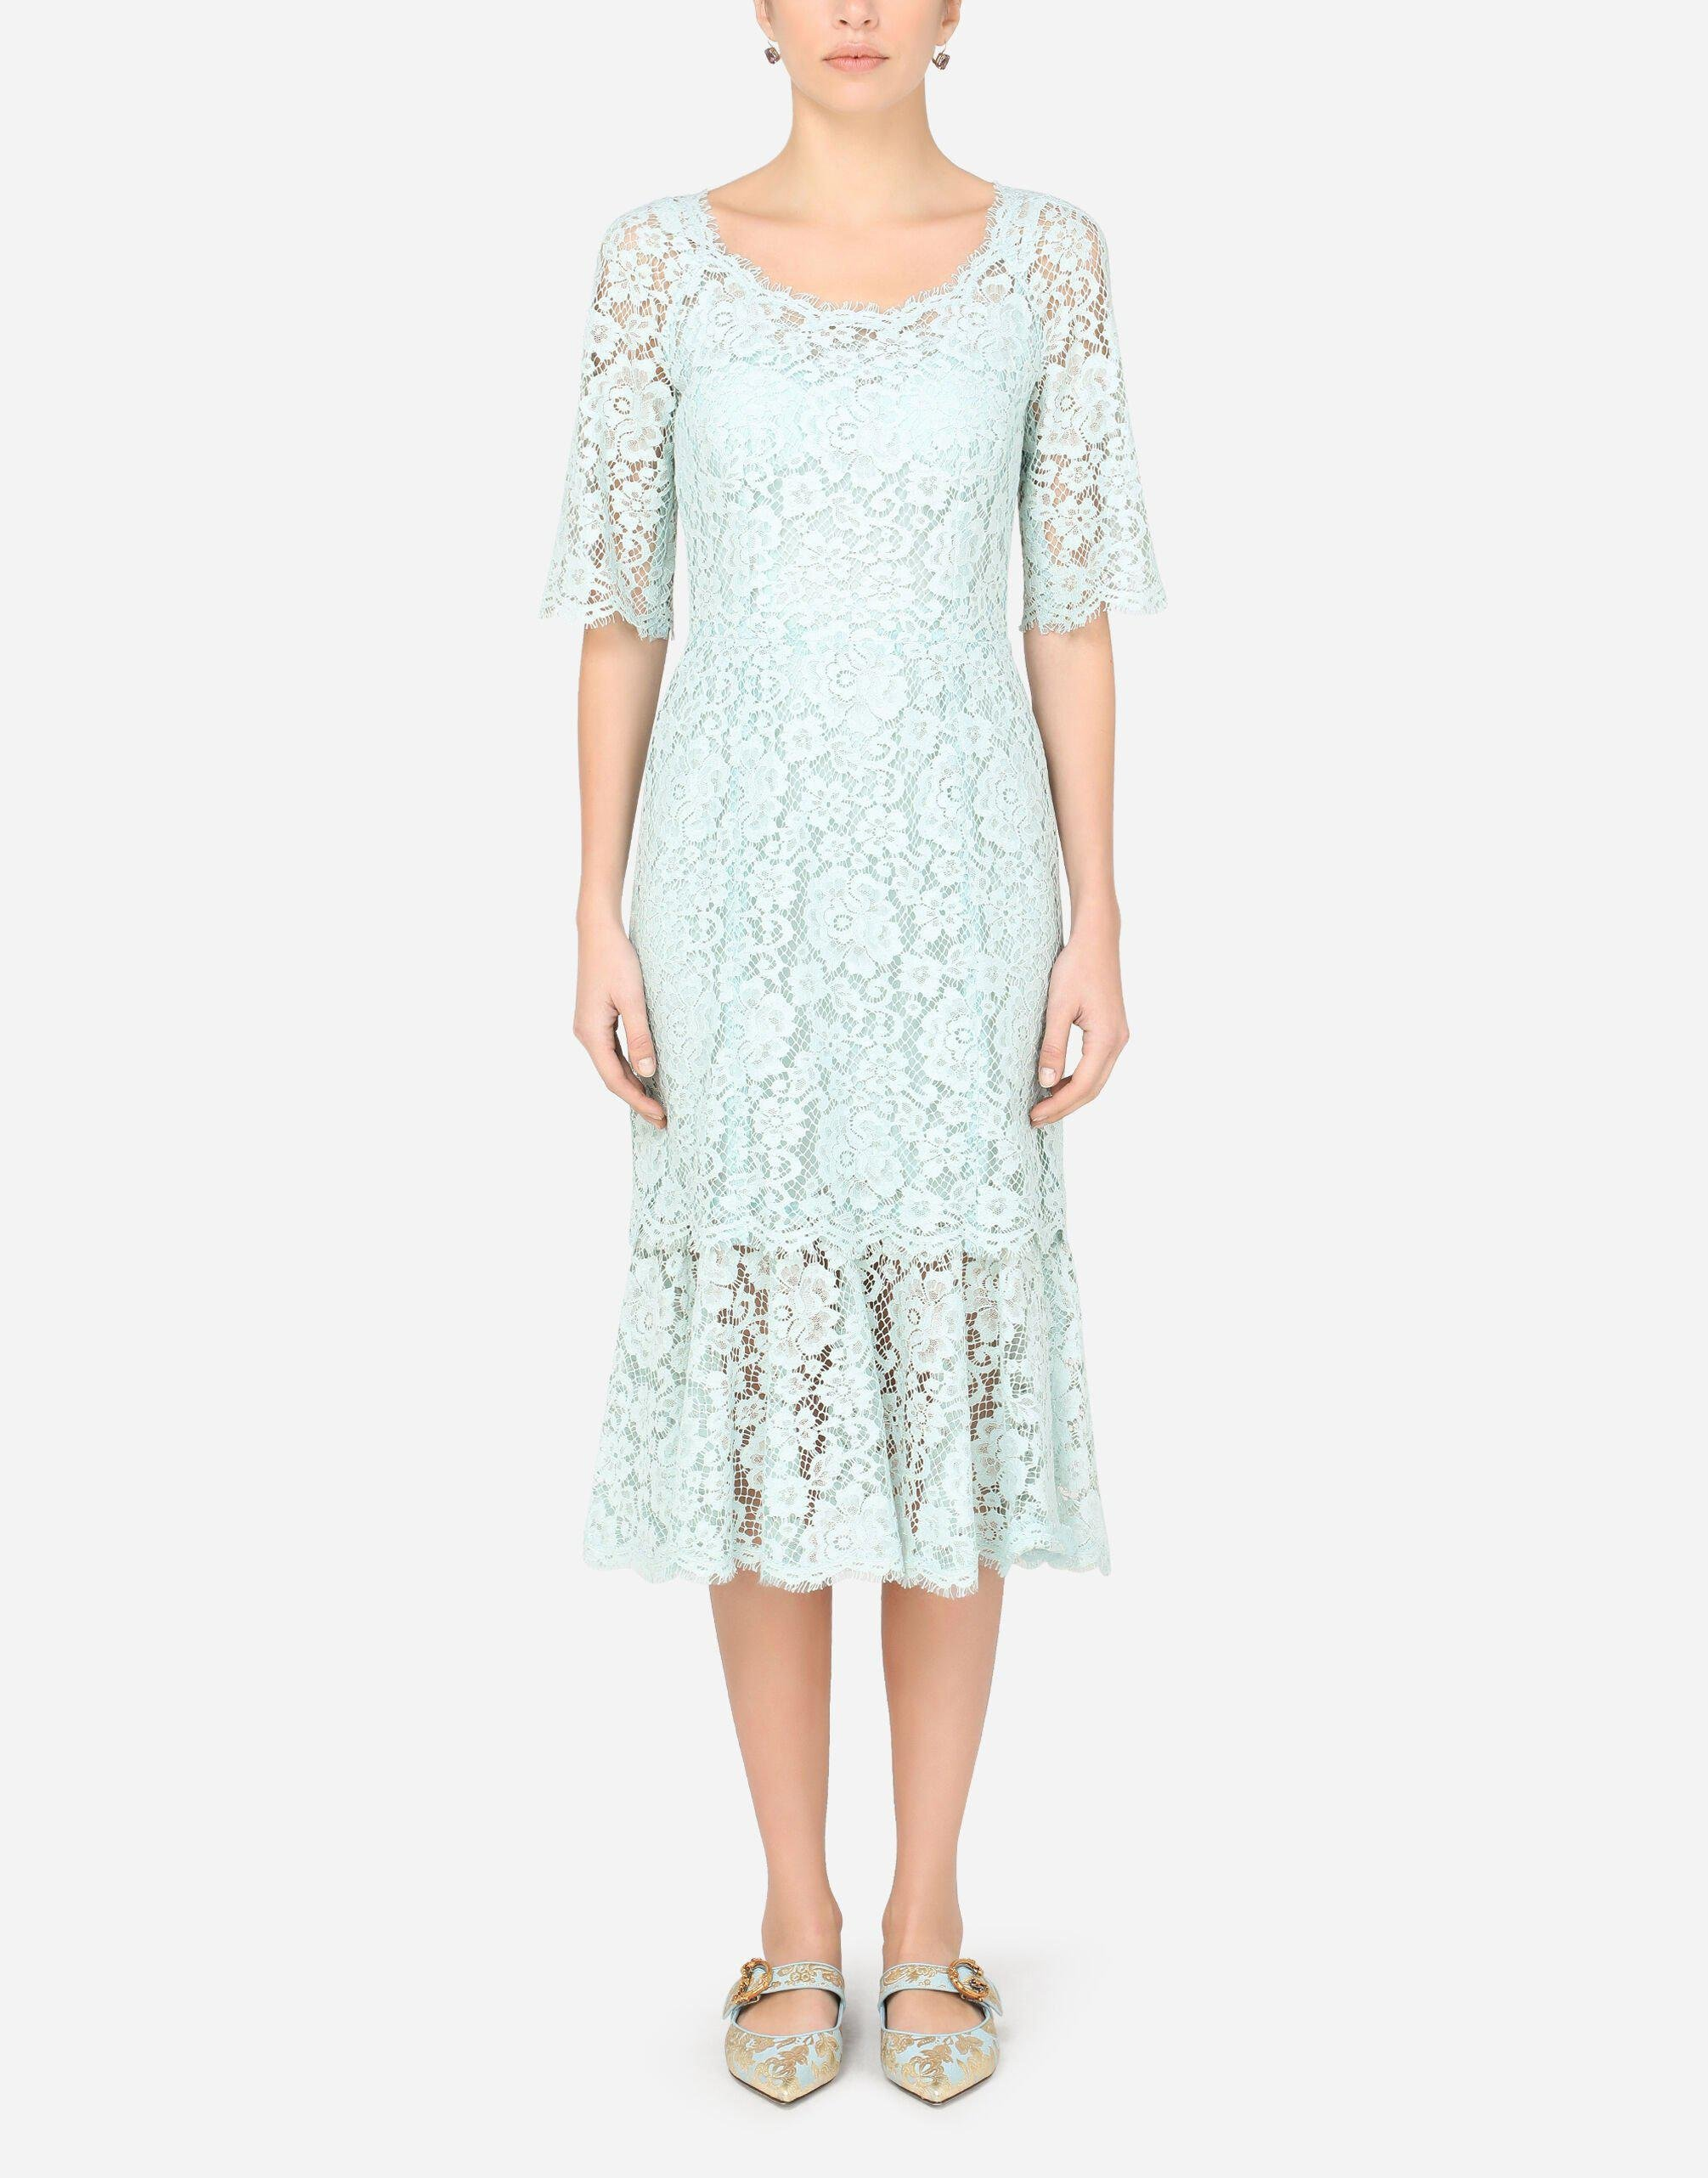 Lace calf-length dress with ruffle detailing